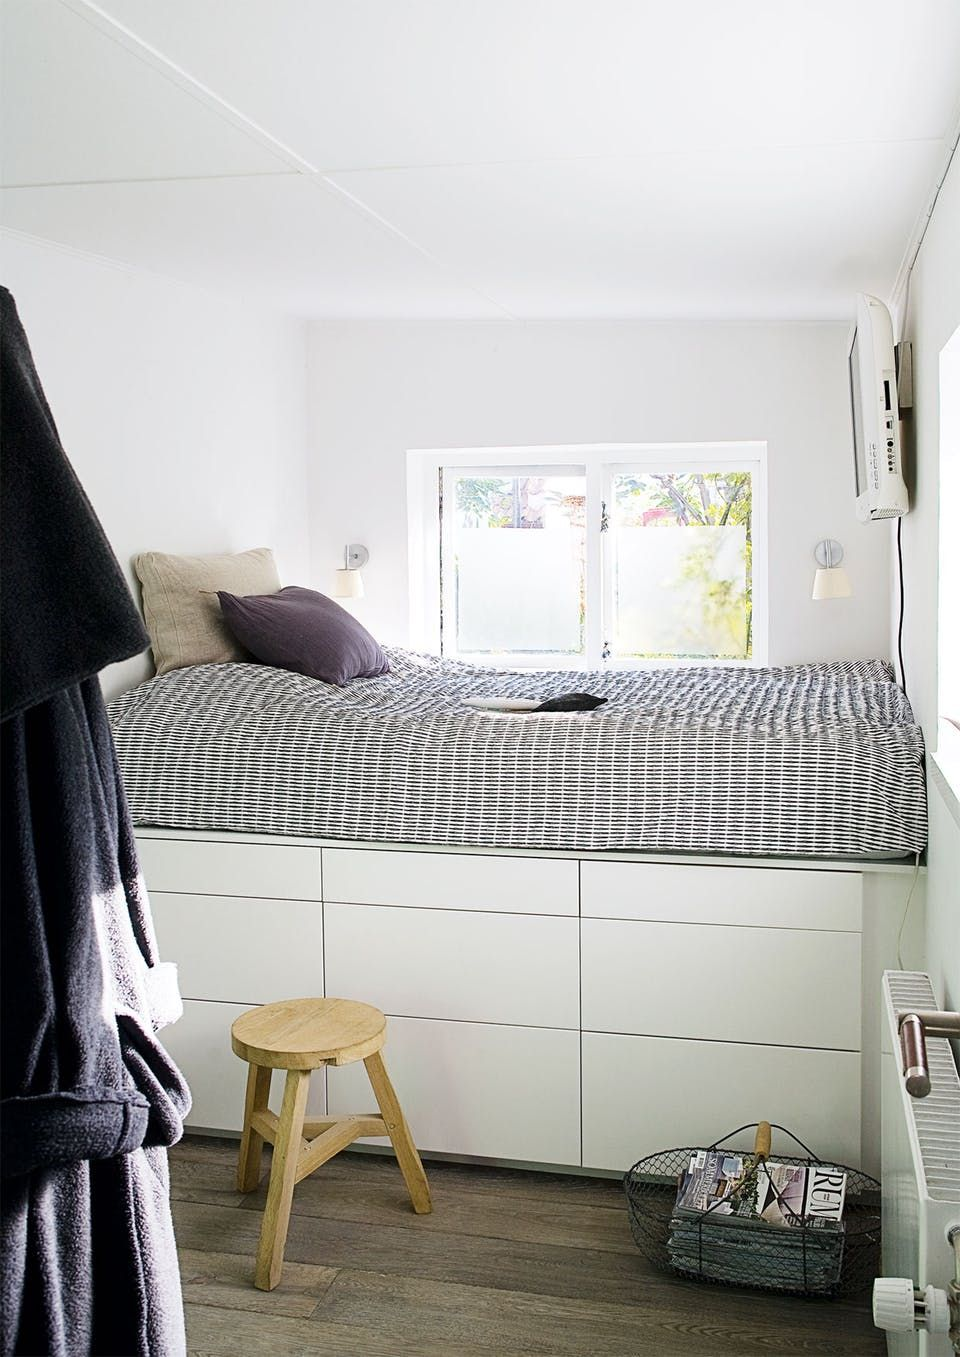 Nice bedroom with neat storage space under the bed.